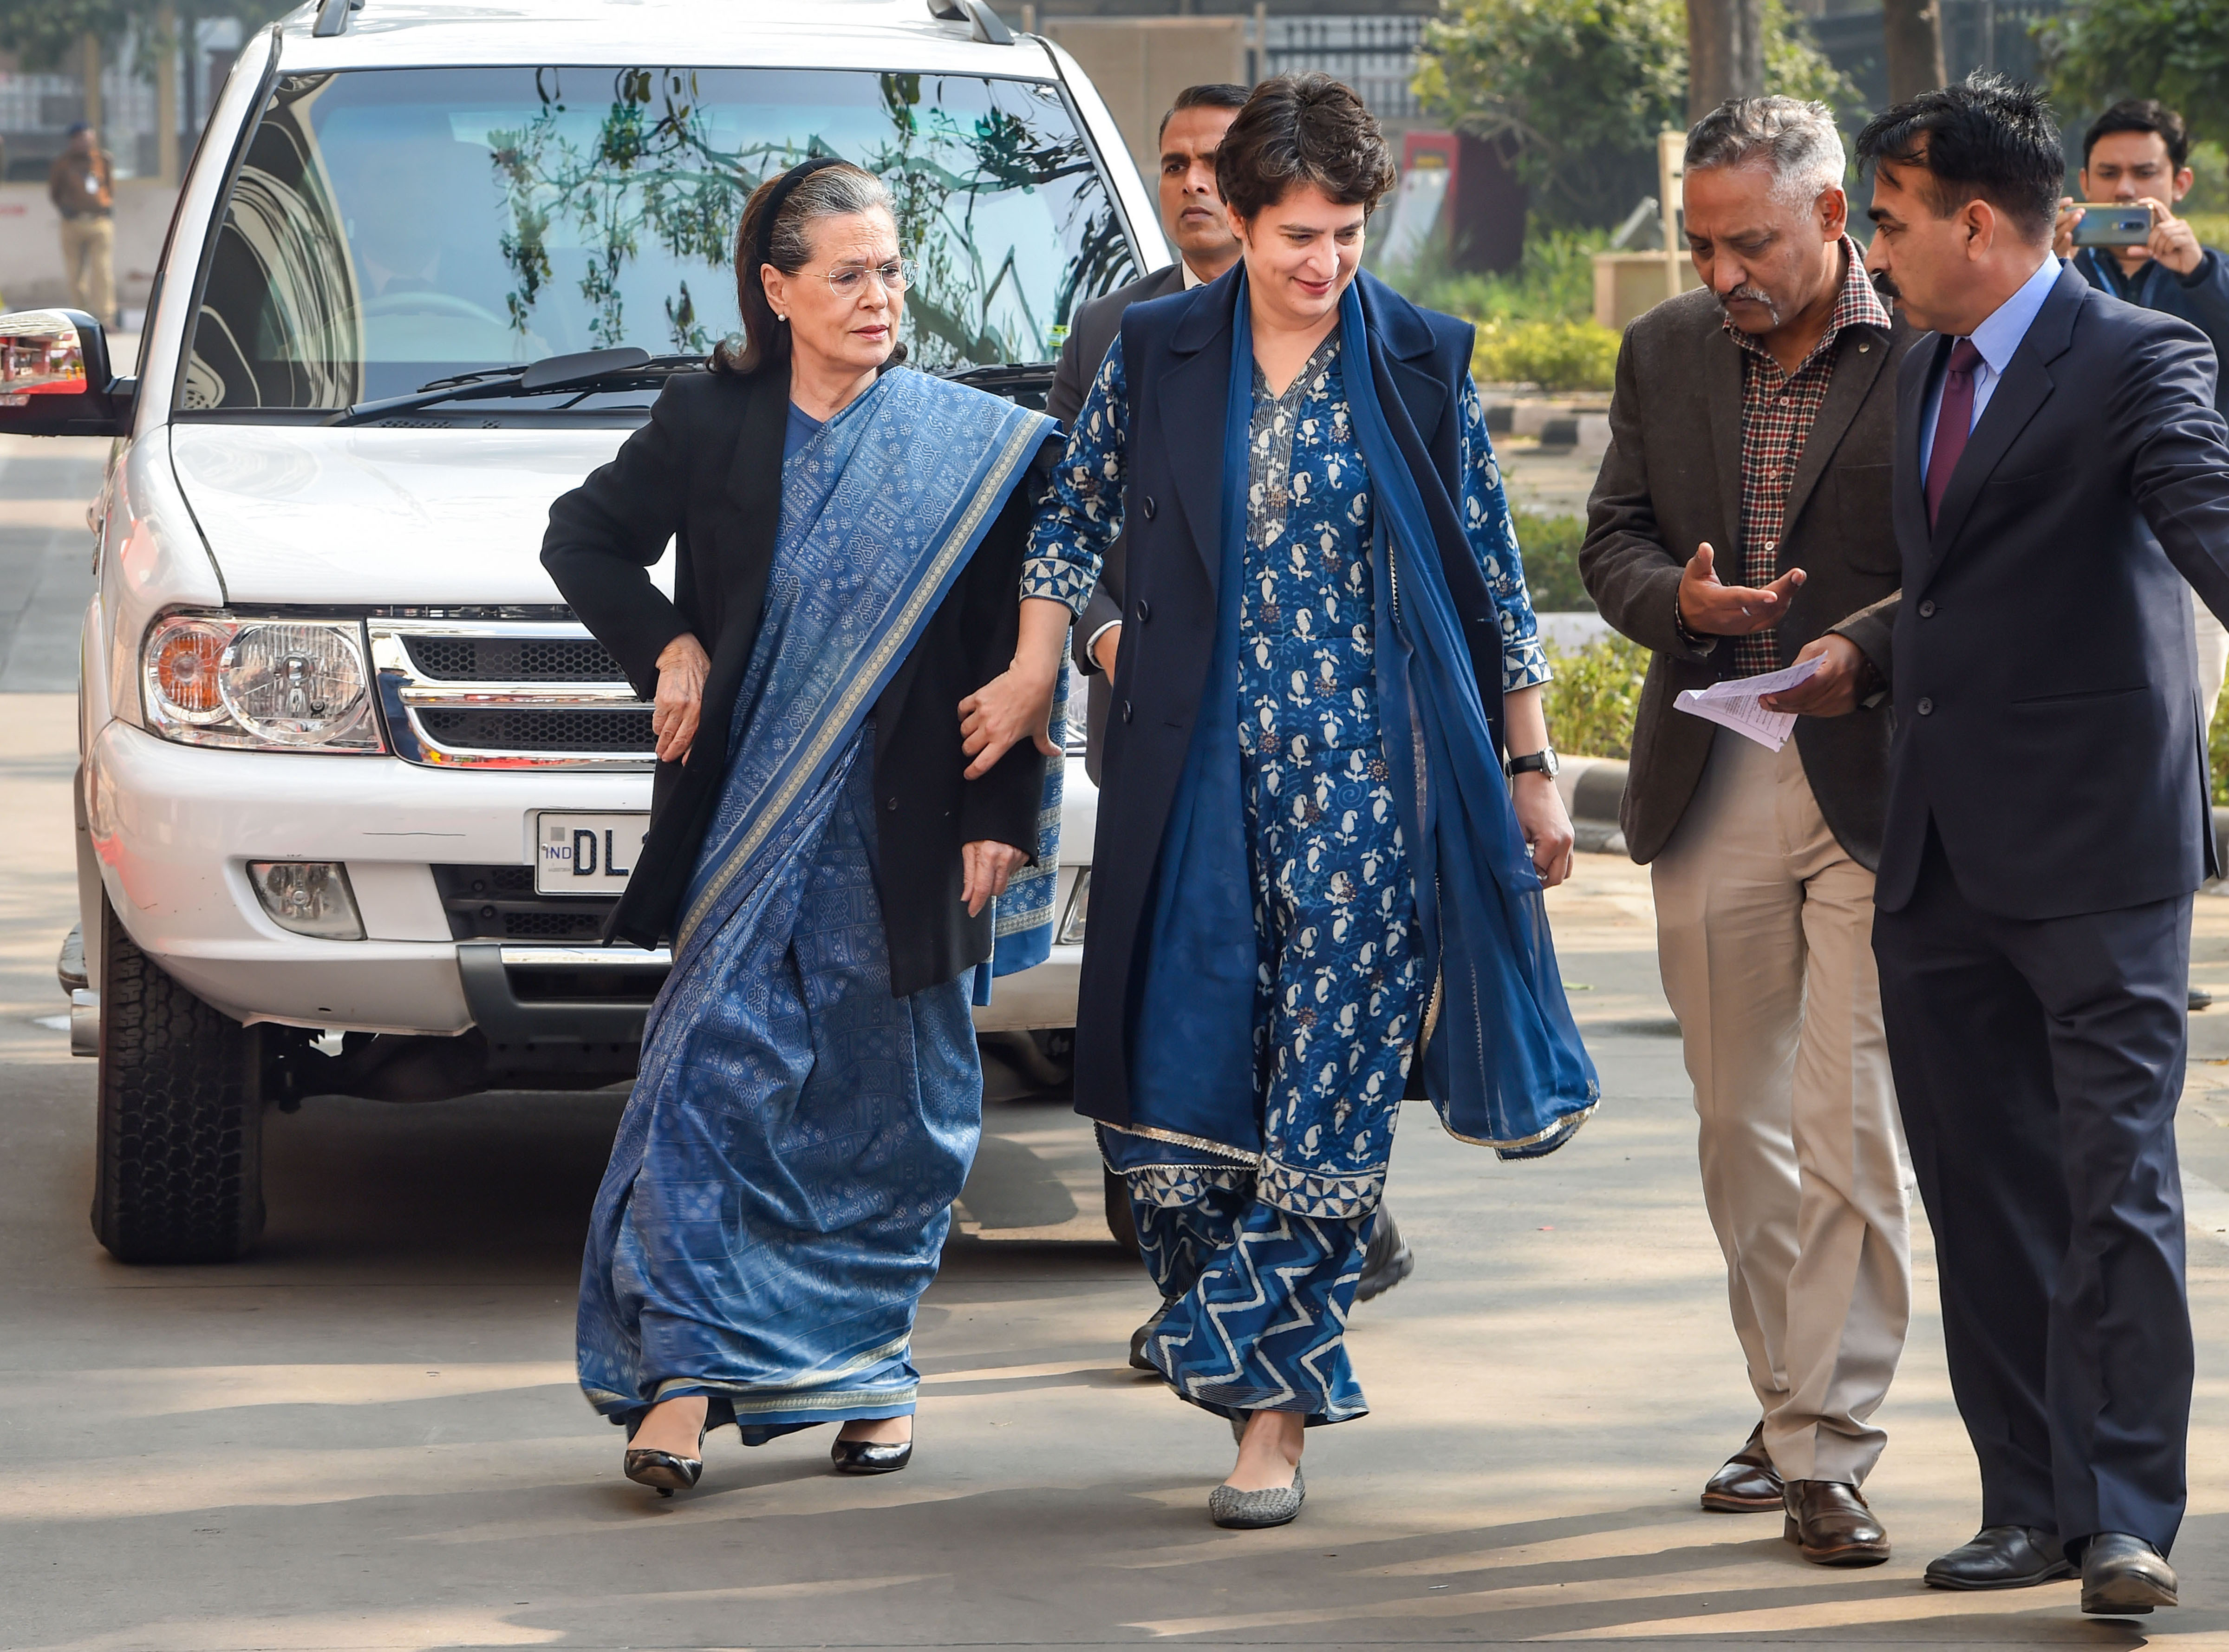 Congress president Sonia Gandhi, along with party's general secretary Priyanka Gandhi Vadra, arrives at Nirman Bhawan polling station to cast her vote during the Delhi Assembly elections, in New Delhi, Saturday, February 8, 2020